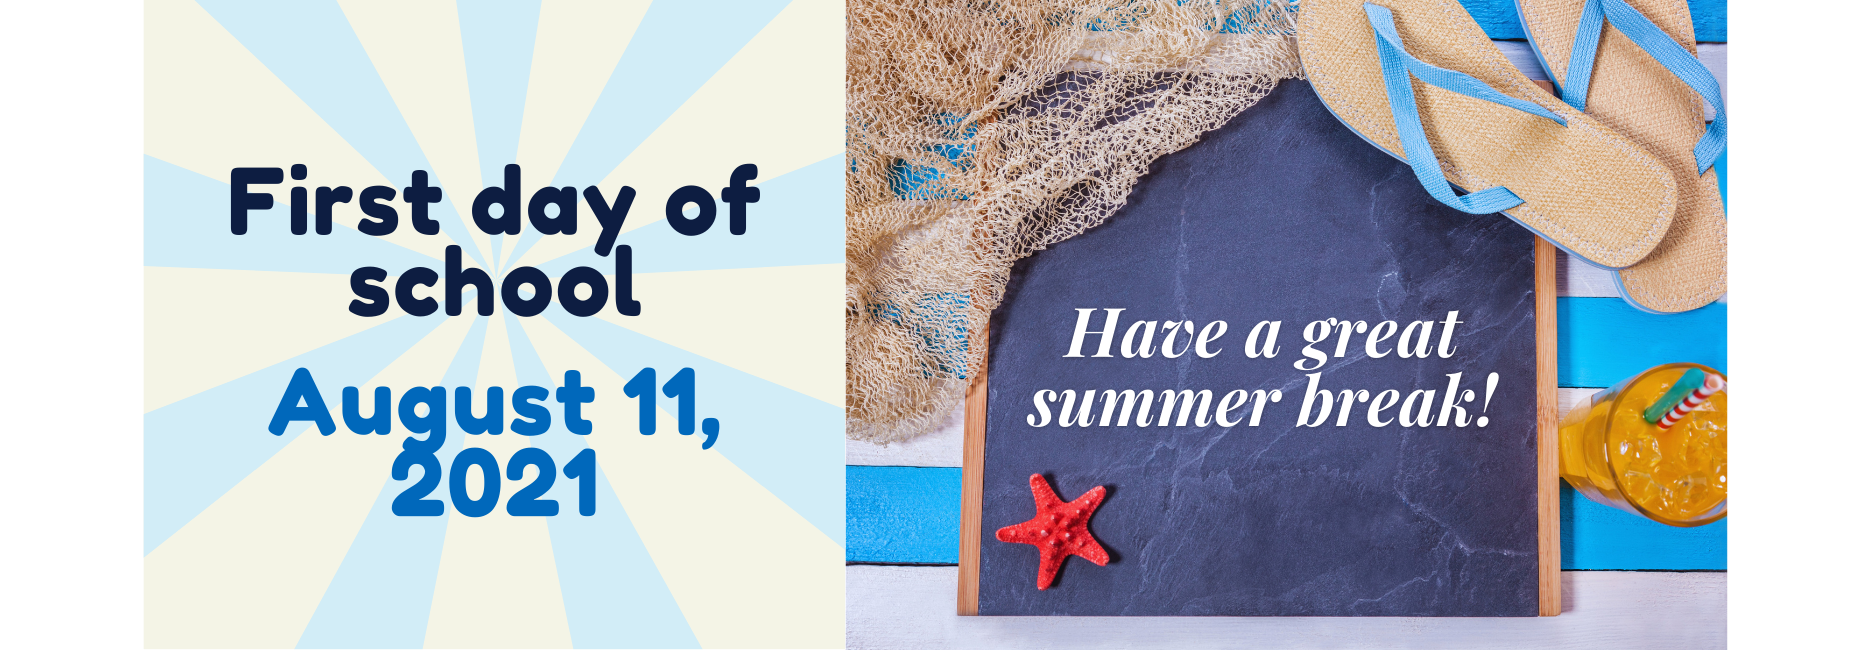 first day of school august 11. have a great summer break